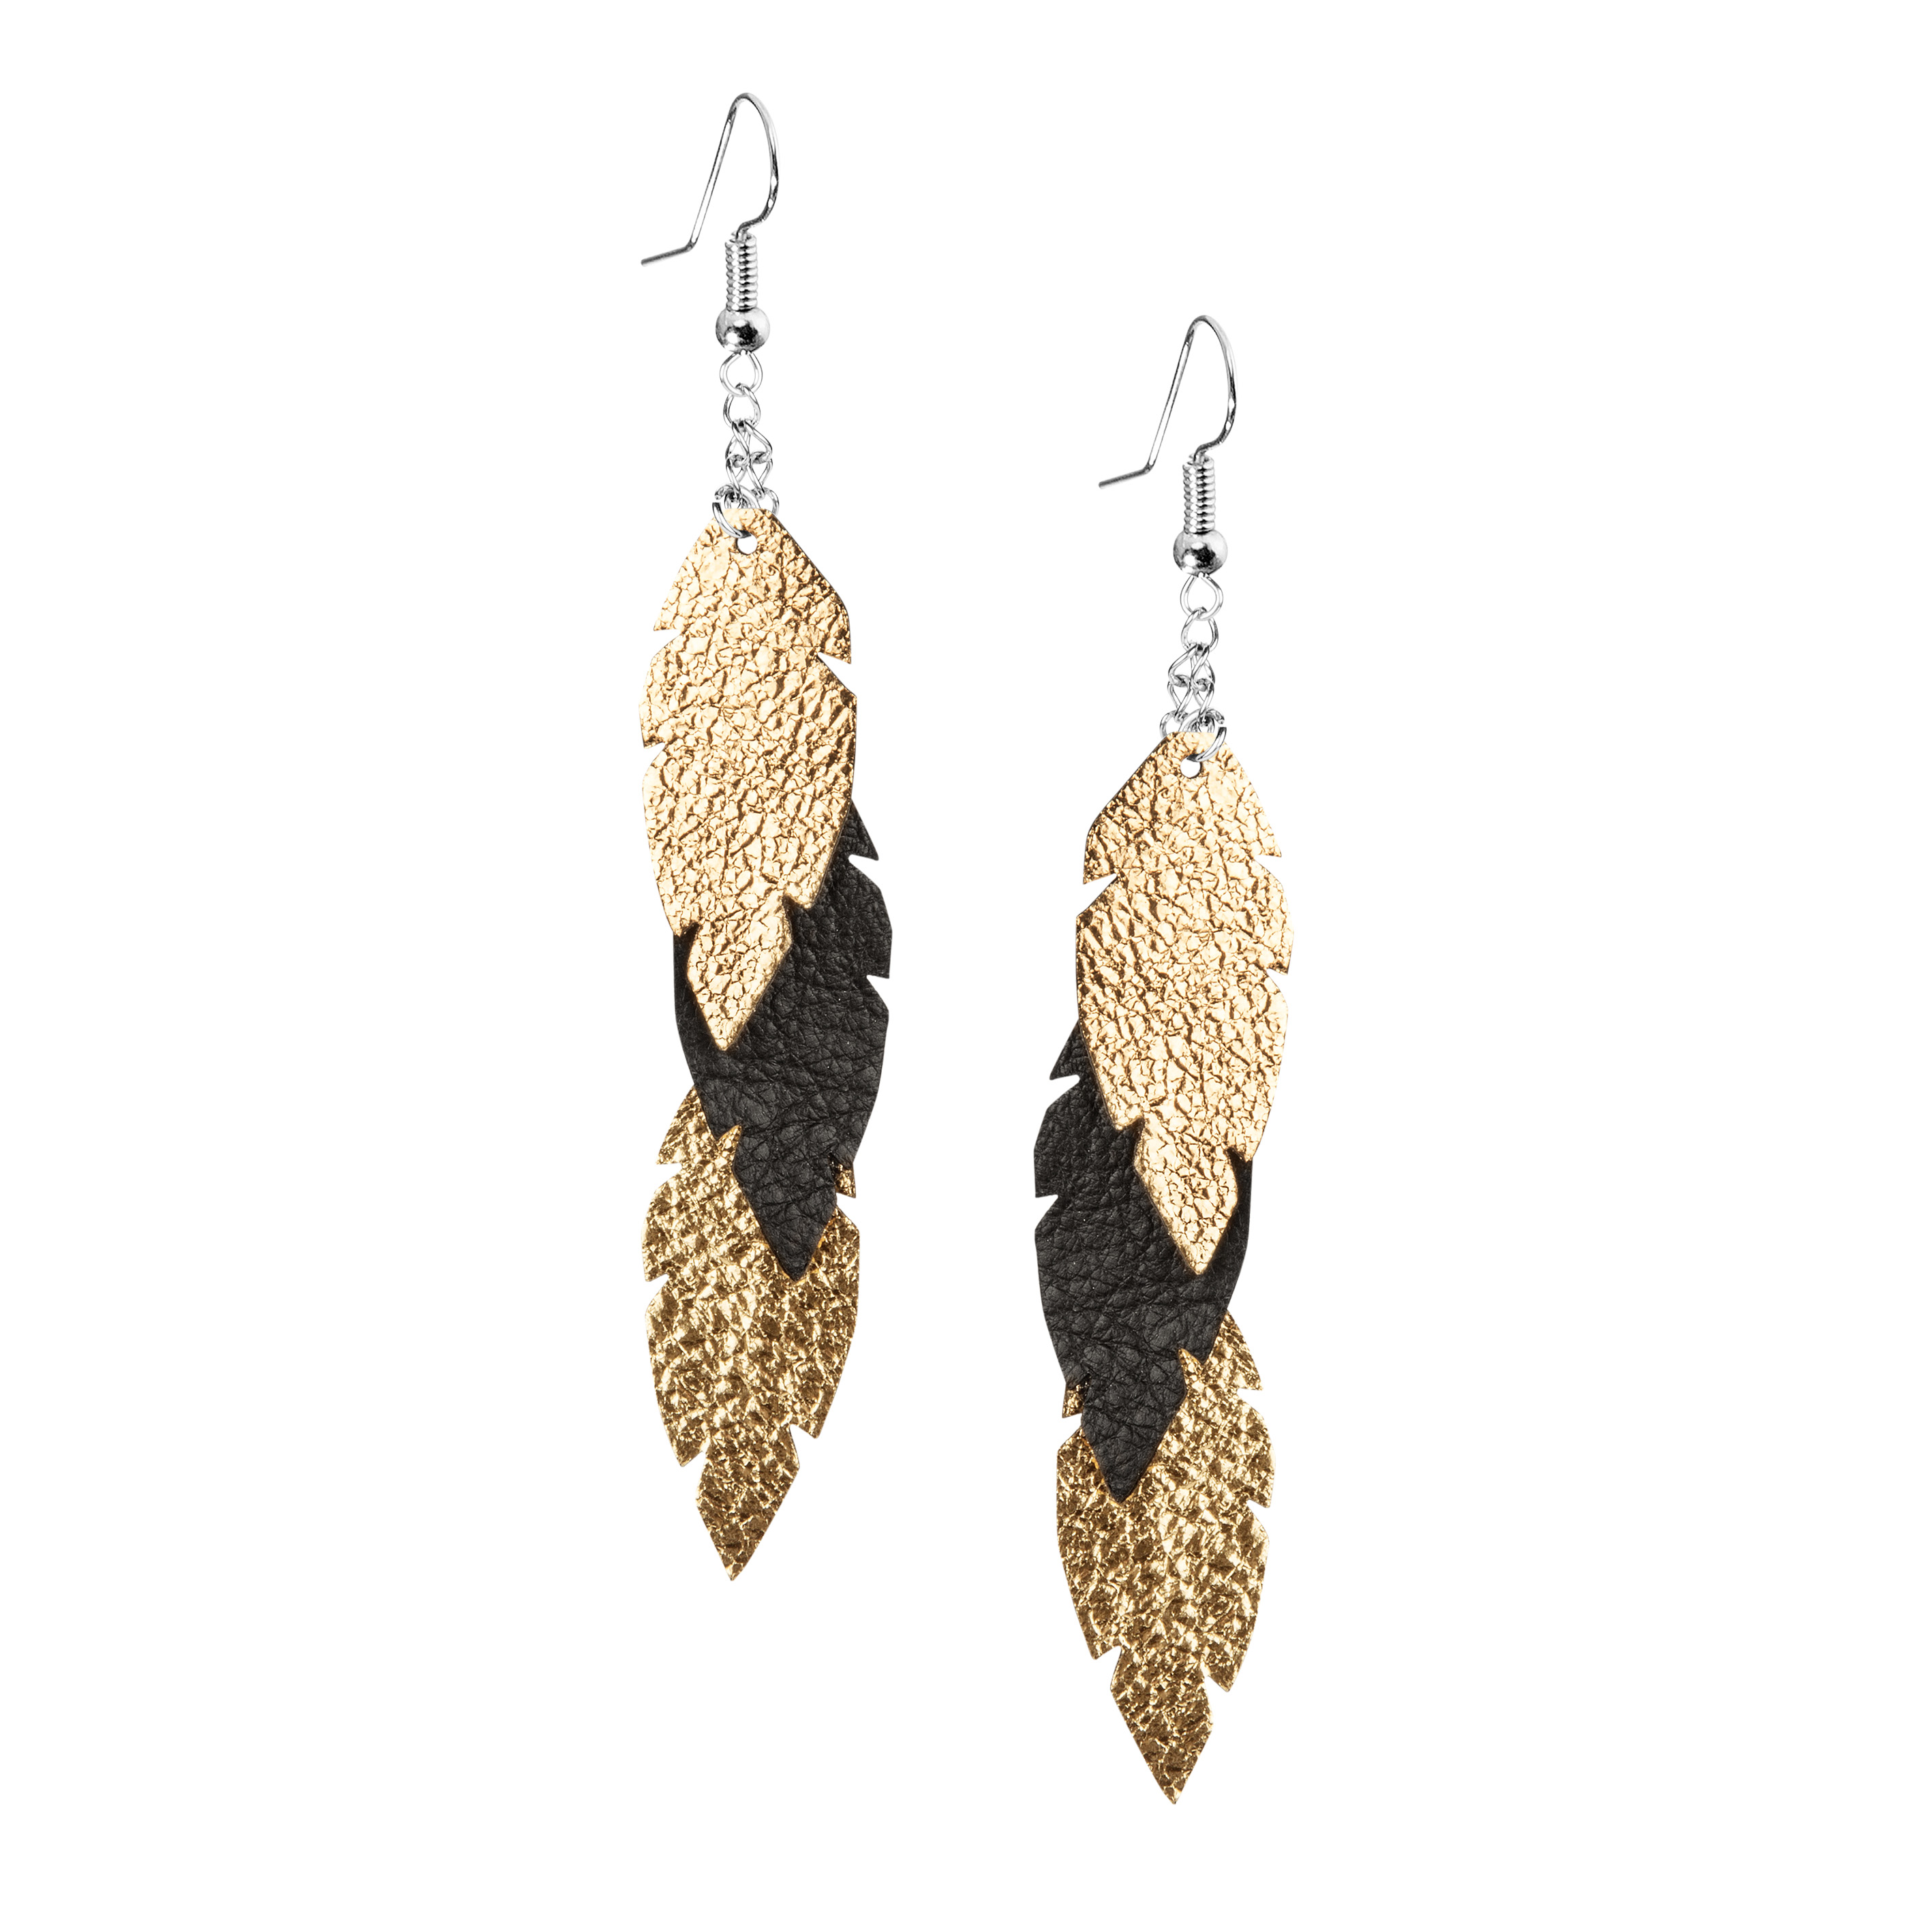 Petite Feathers Feathers in gold - black are eye-catching earrings (length 11.5cm) that can be worn even with a scarf or a turtleneck shirt. Light as a feather earrings from luxurious Italian goat leather, which look gorgeous on anyone regardless of the length of their neck.